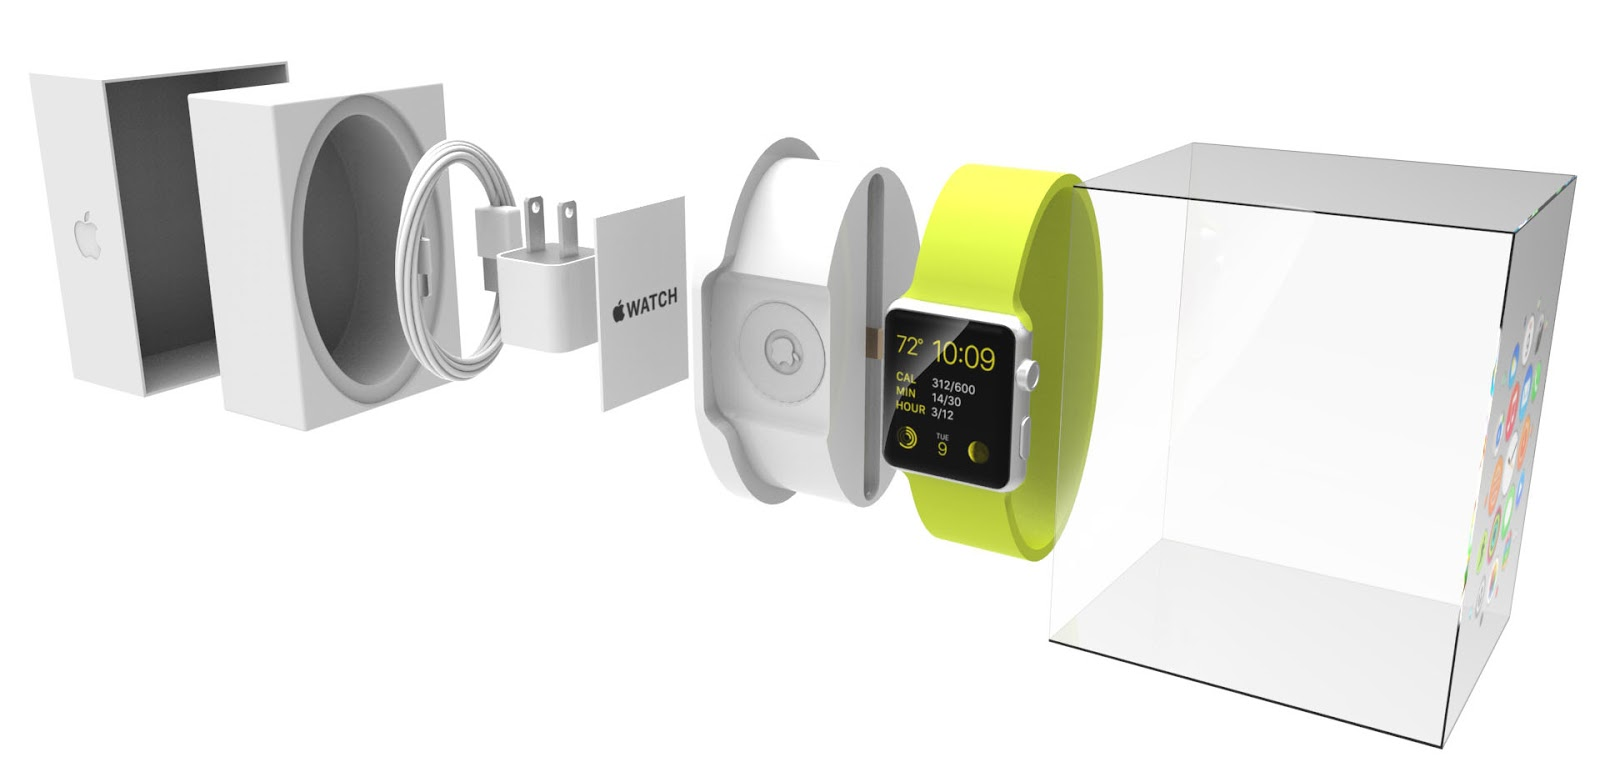 Apple Watch Supercharged Packaging Concept On Packaging